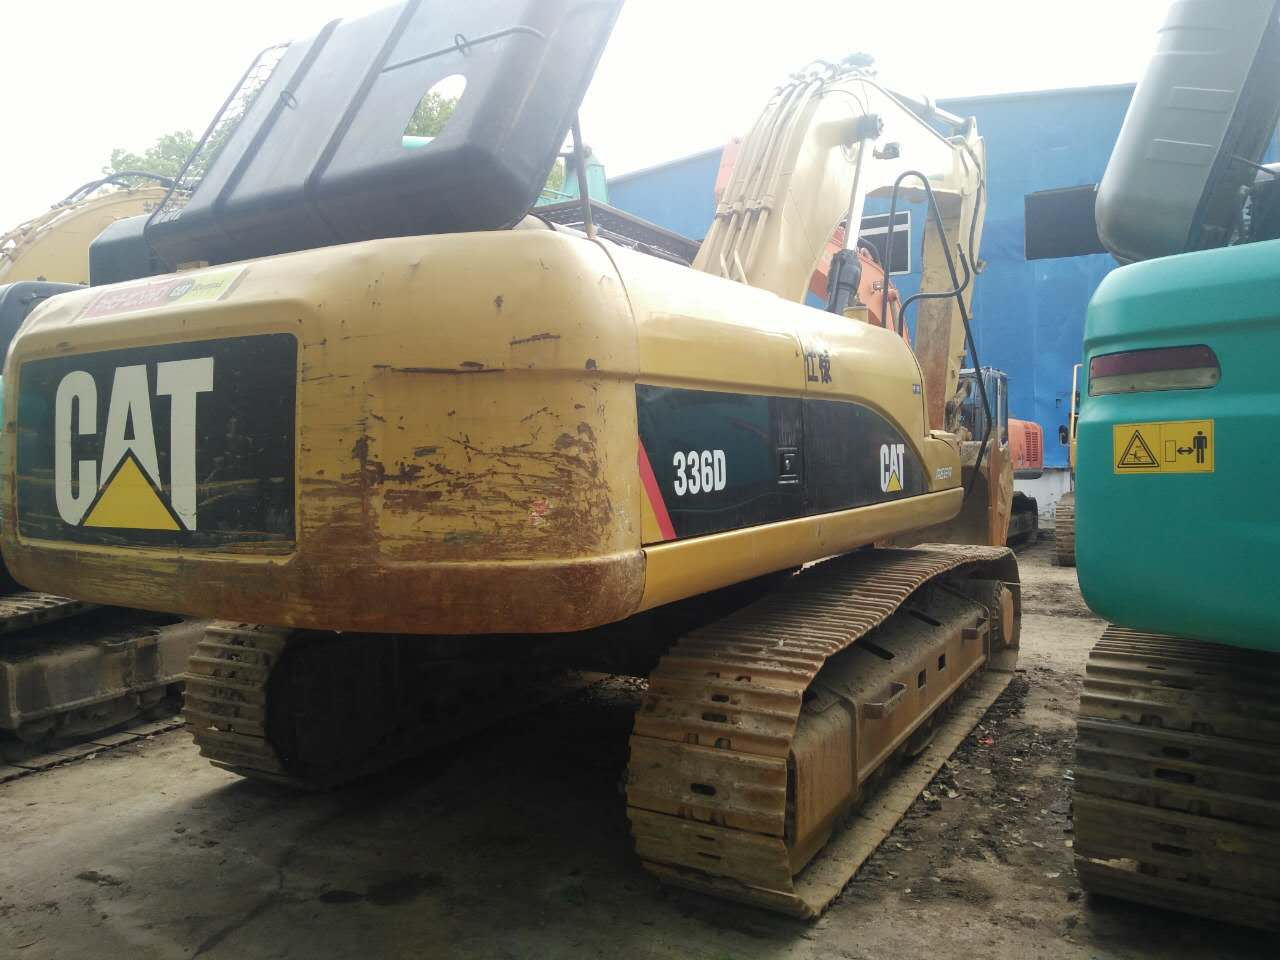 Used Caterpillar 336D crawler excavator good condition for hot sale